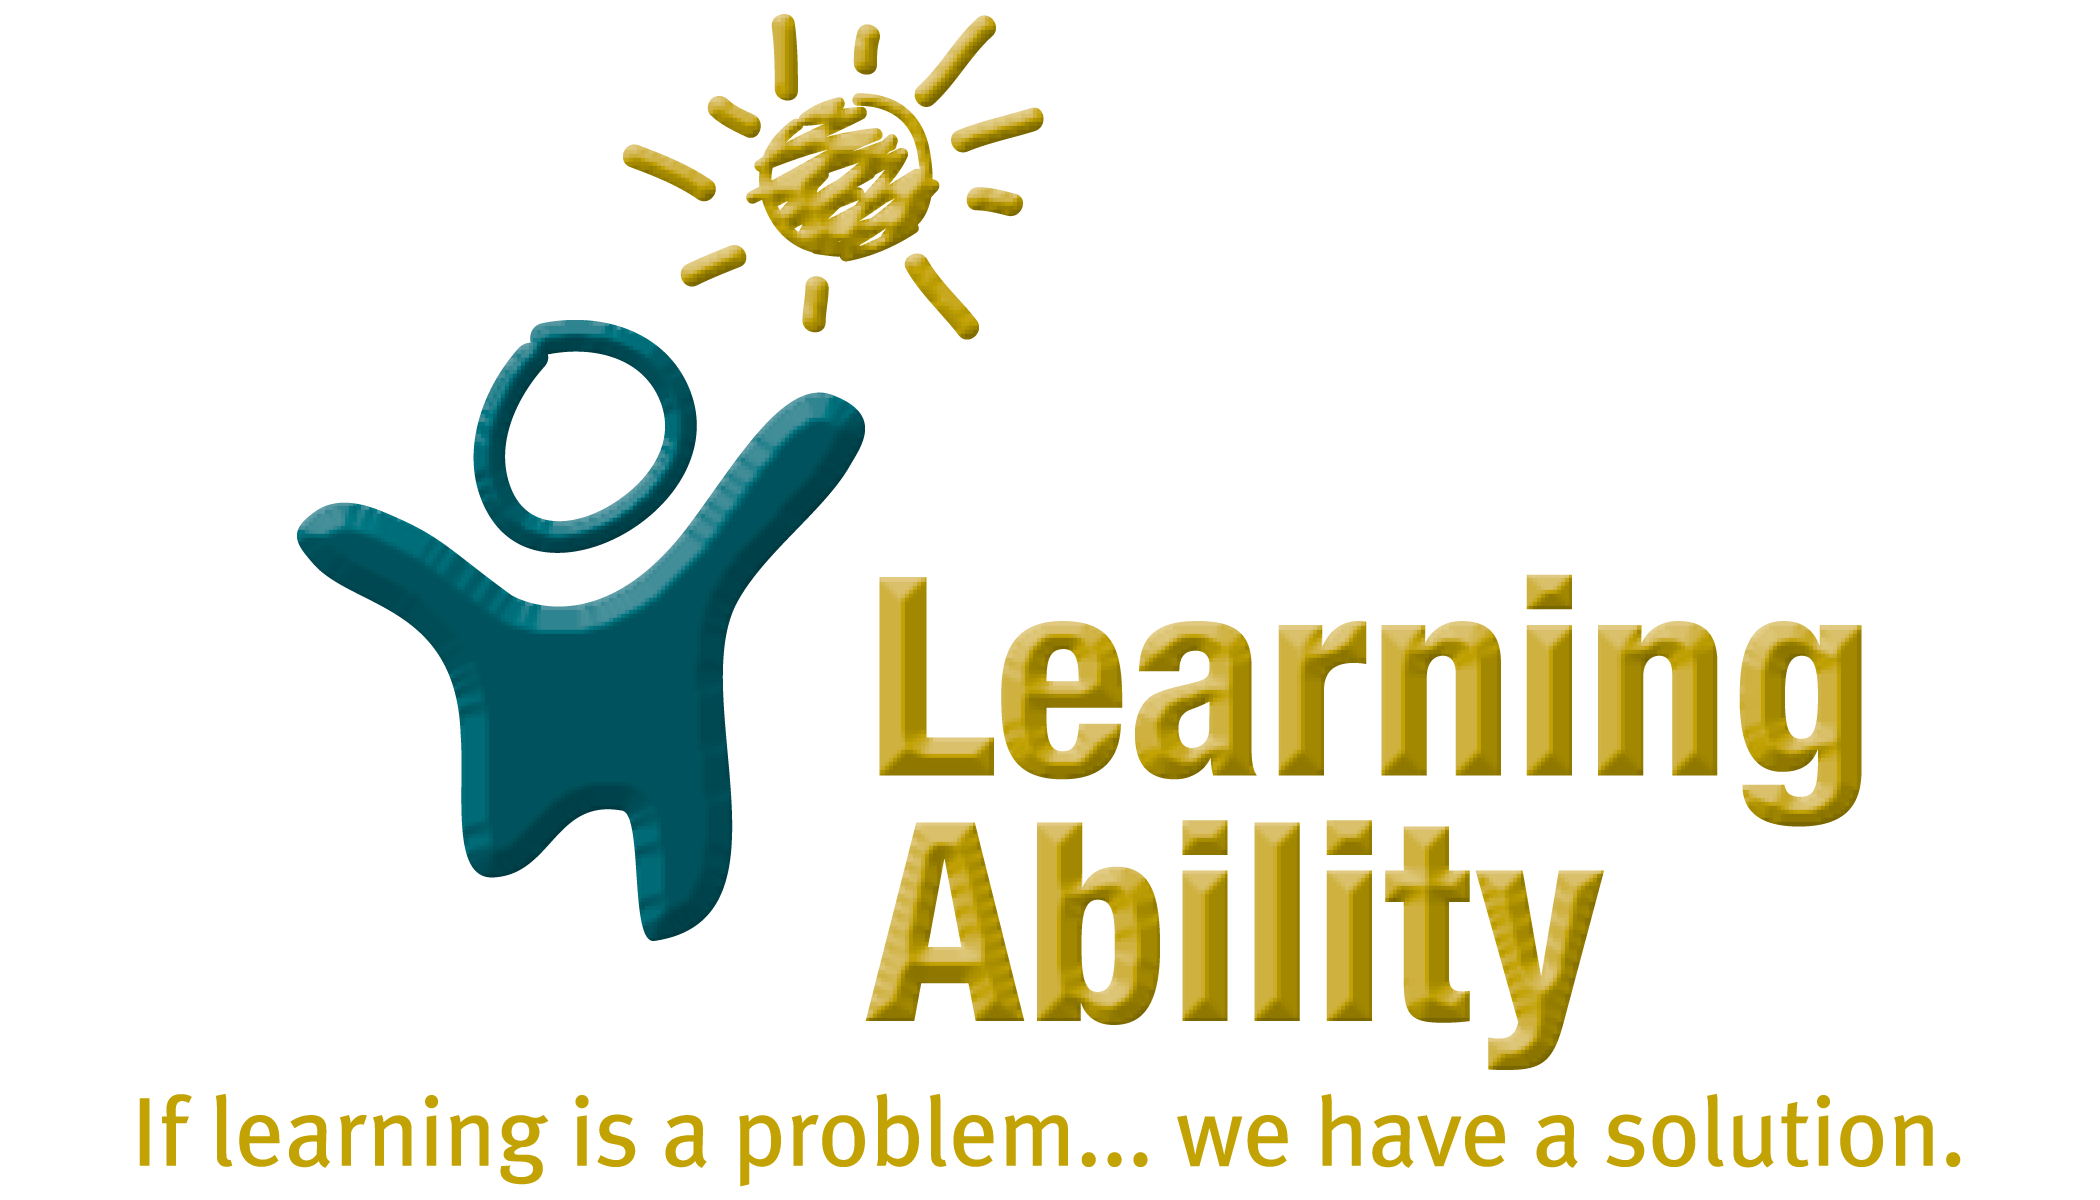 LearningAbilityLogo